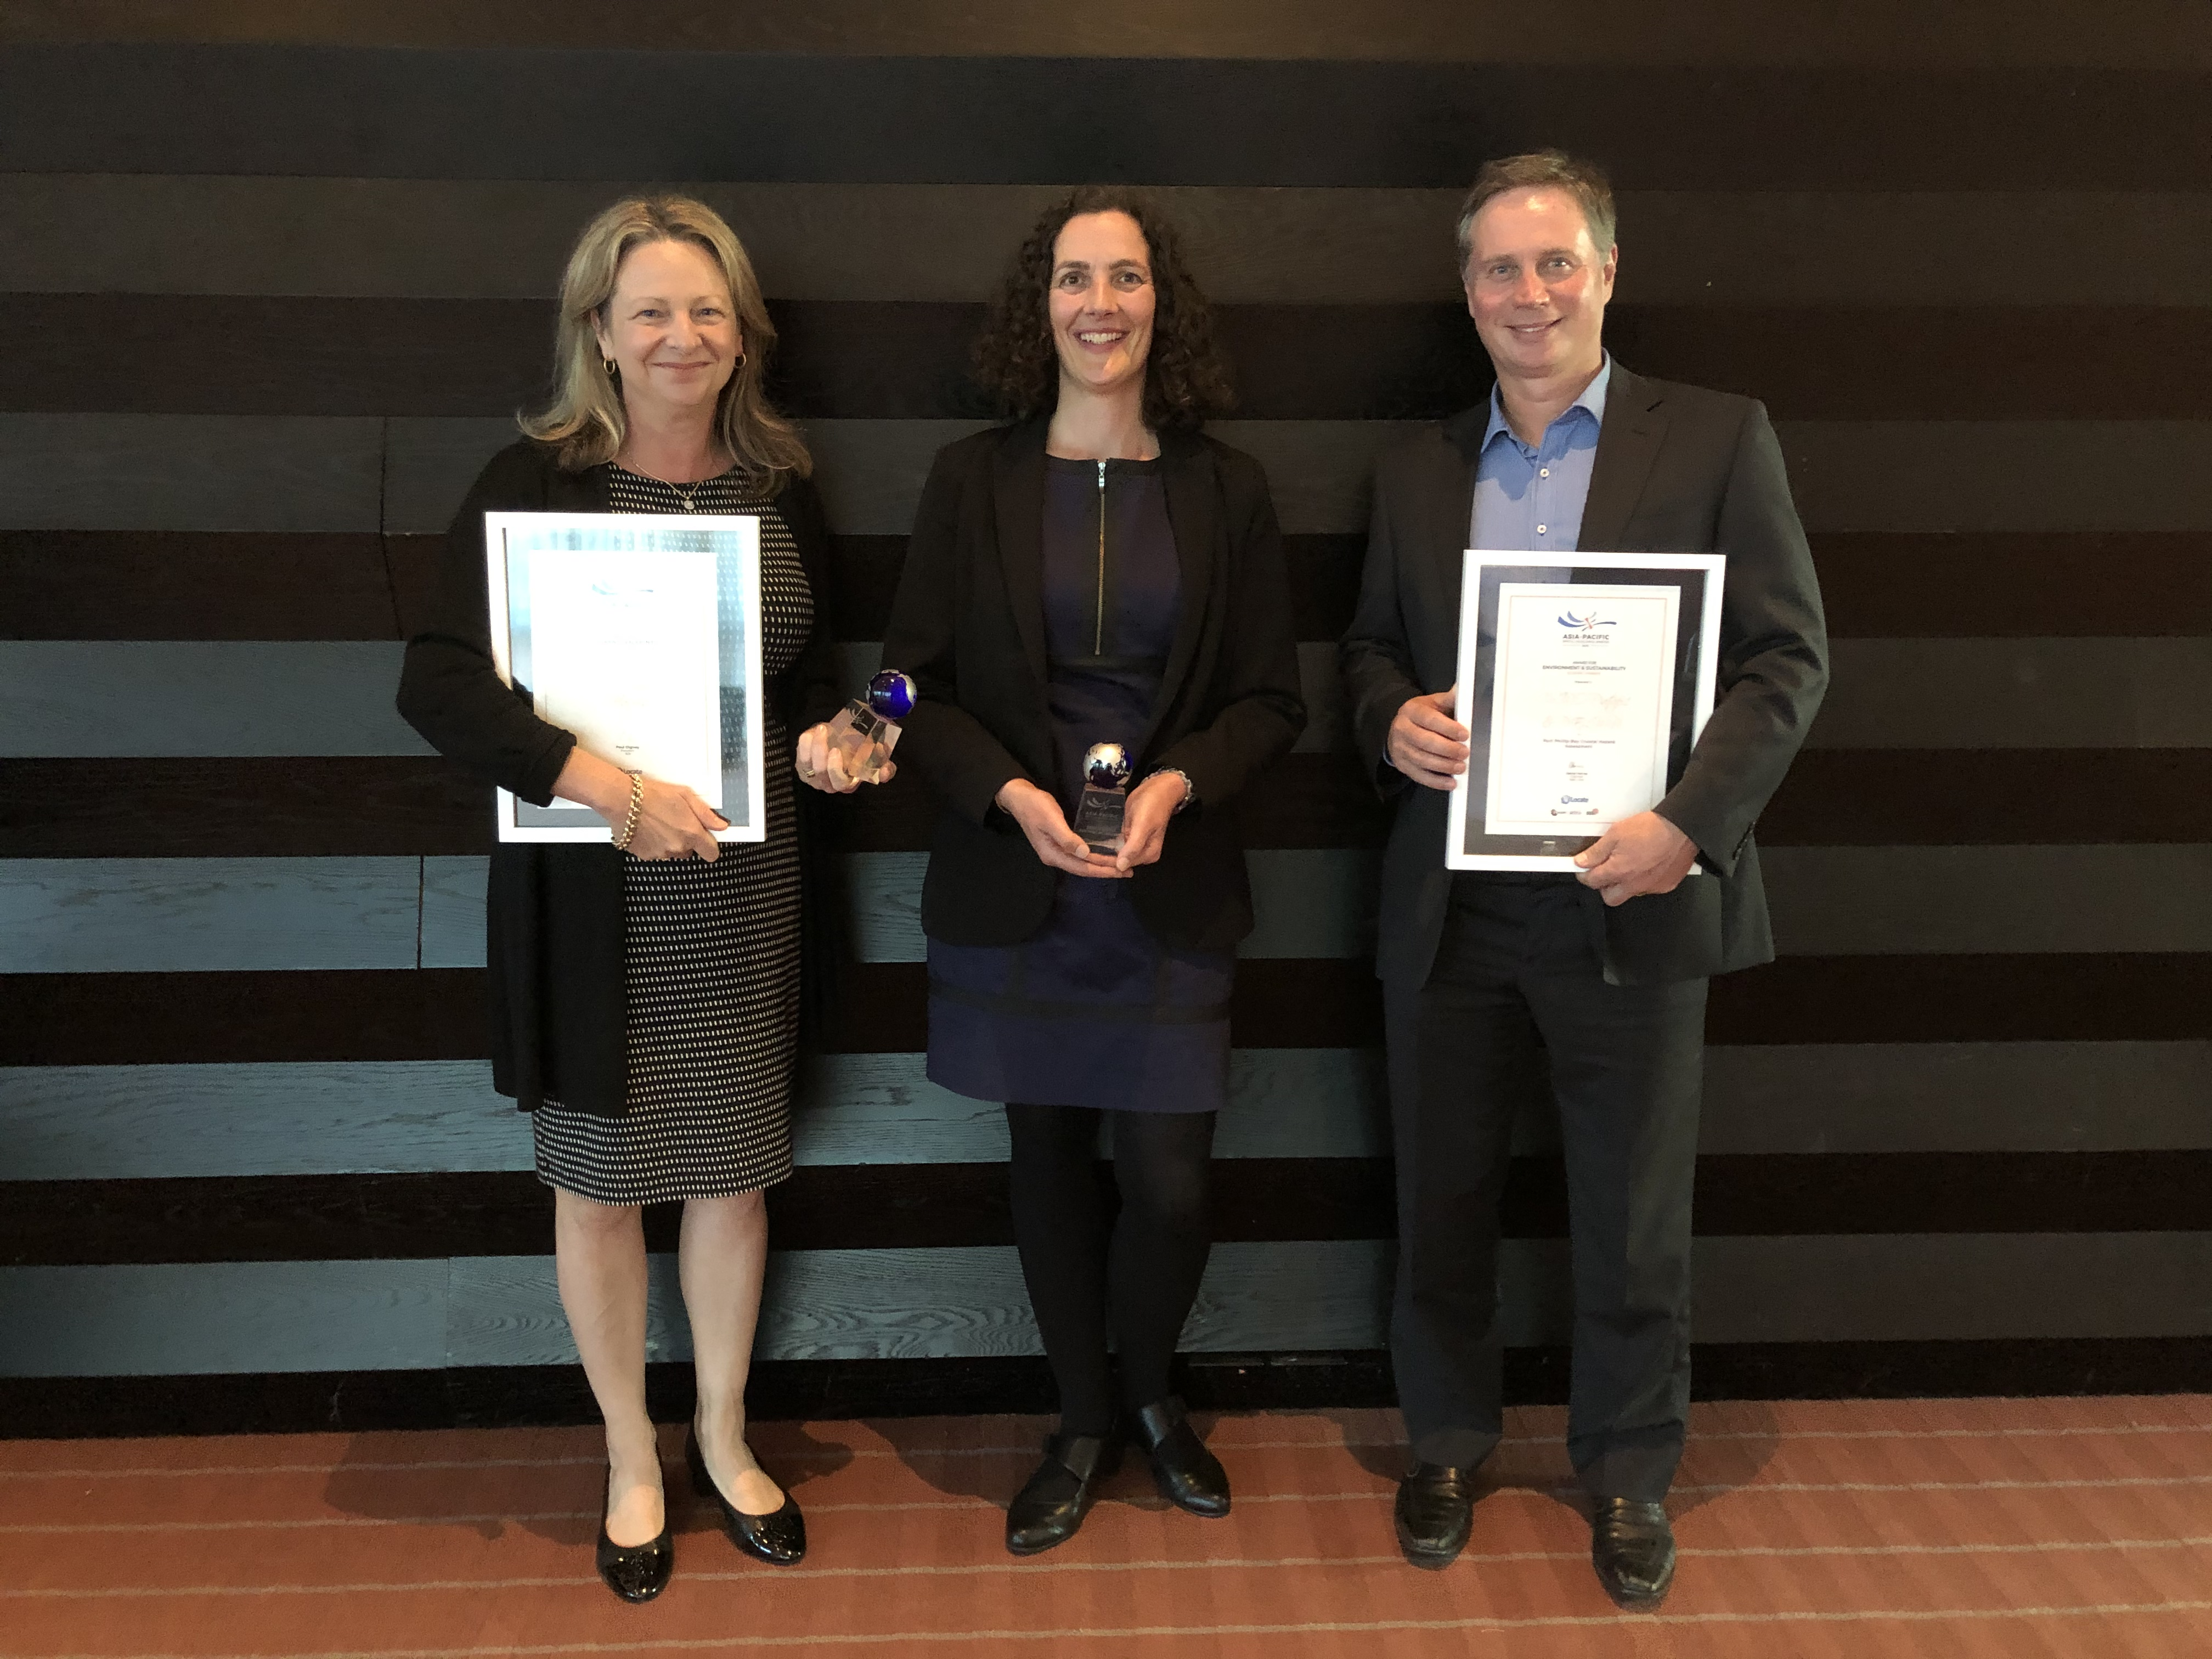 National APSEA Award winners 2021 and their prizes